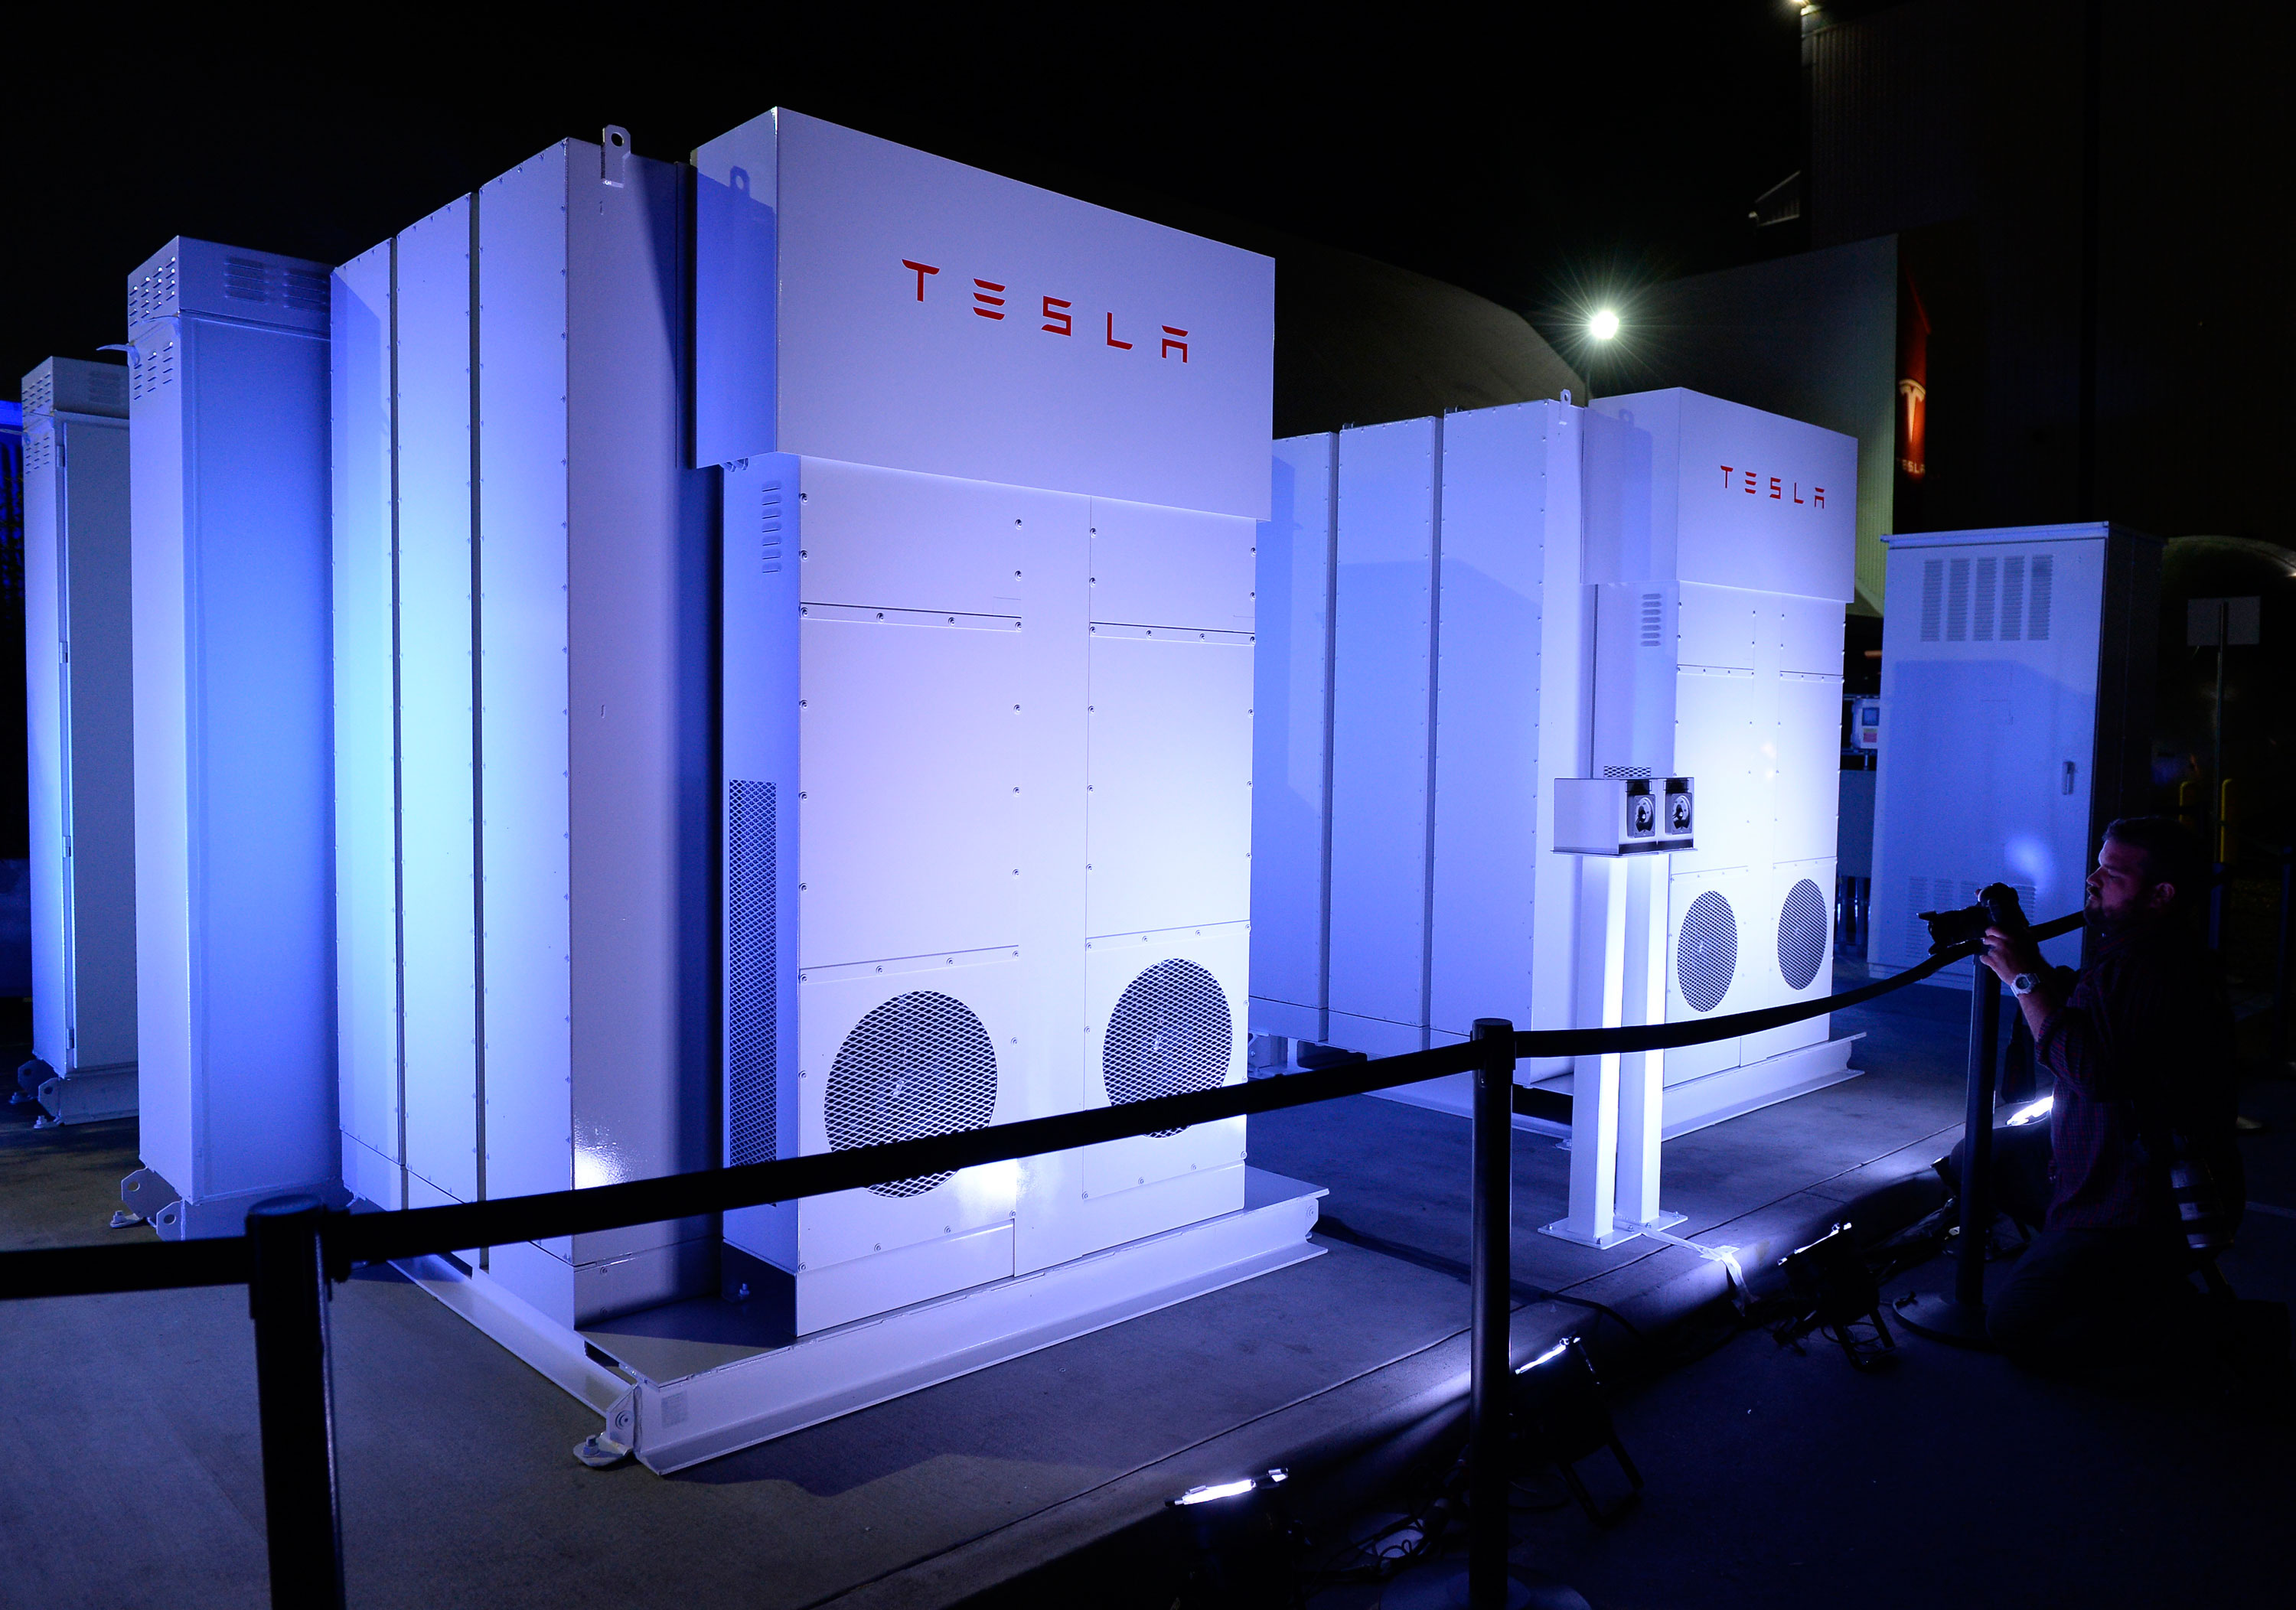 Tesla's grid-scale battery product, the Powerpack.